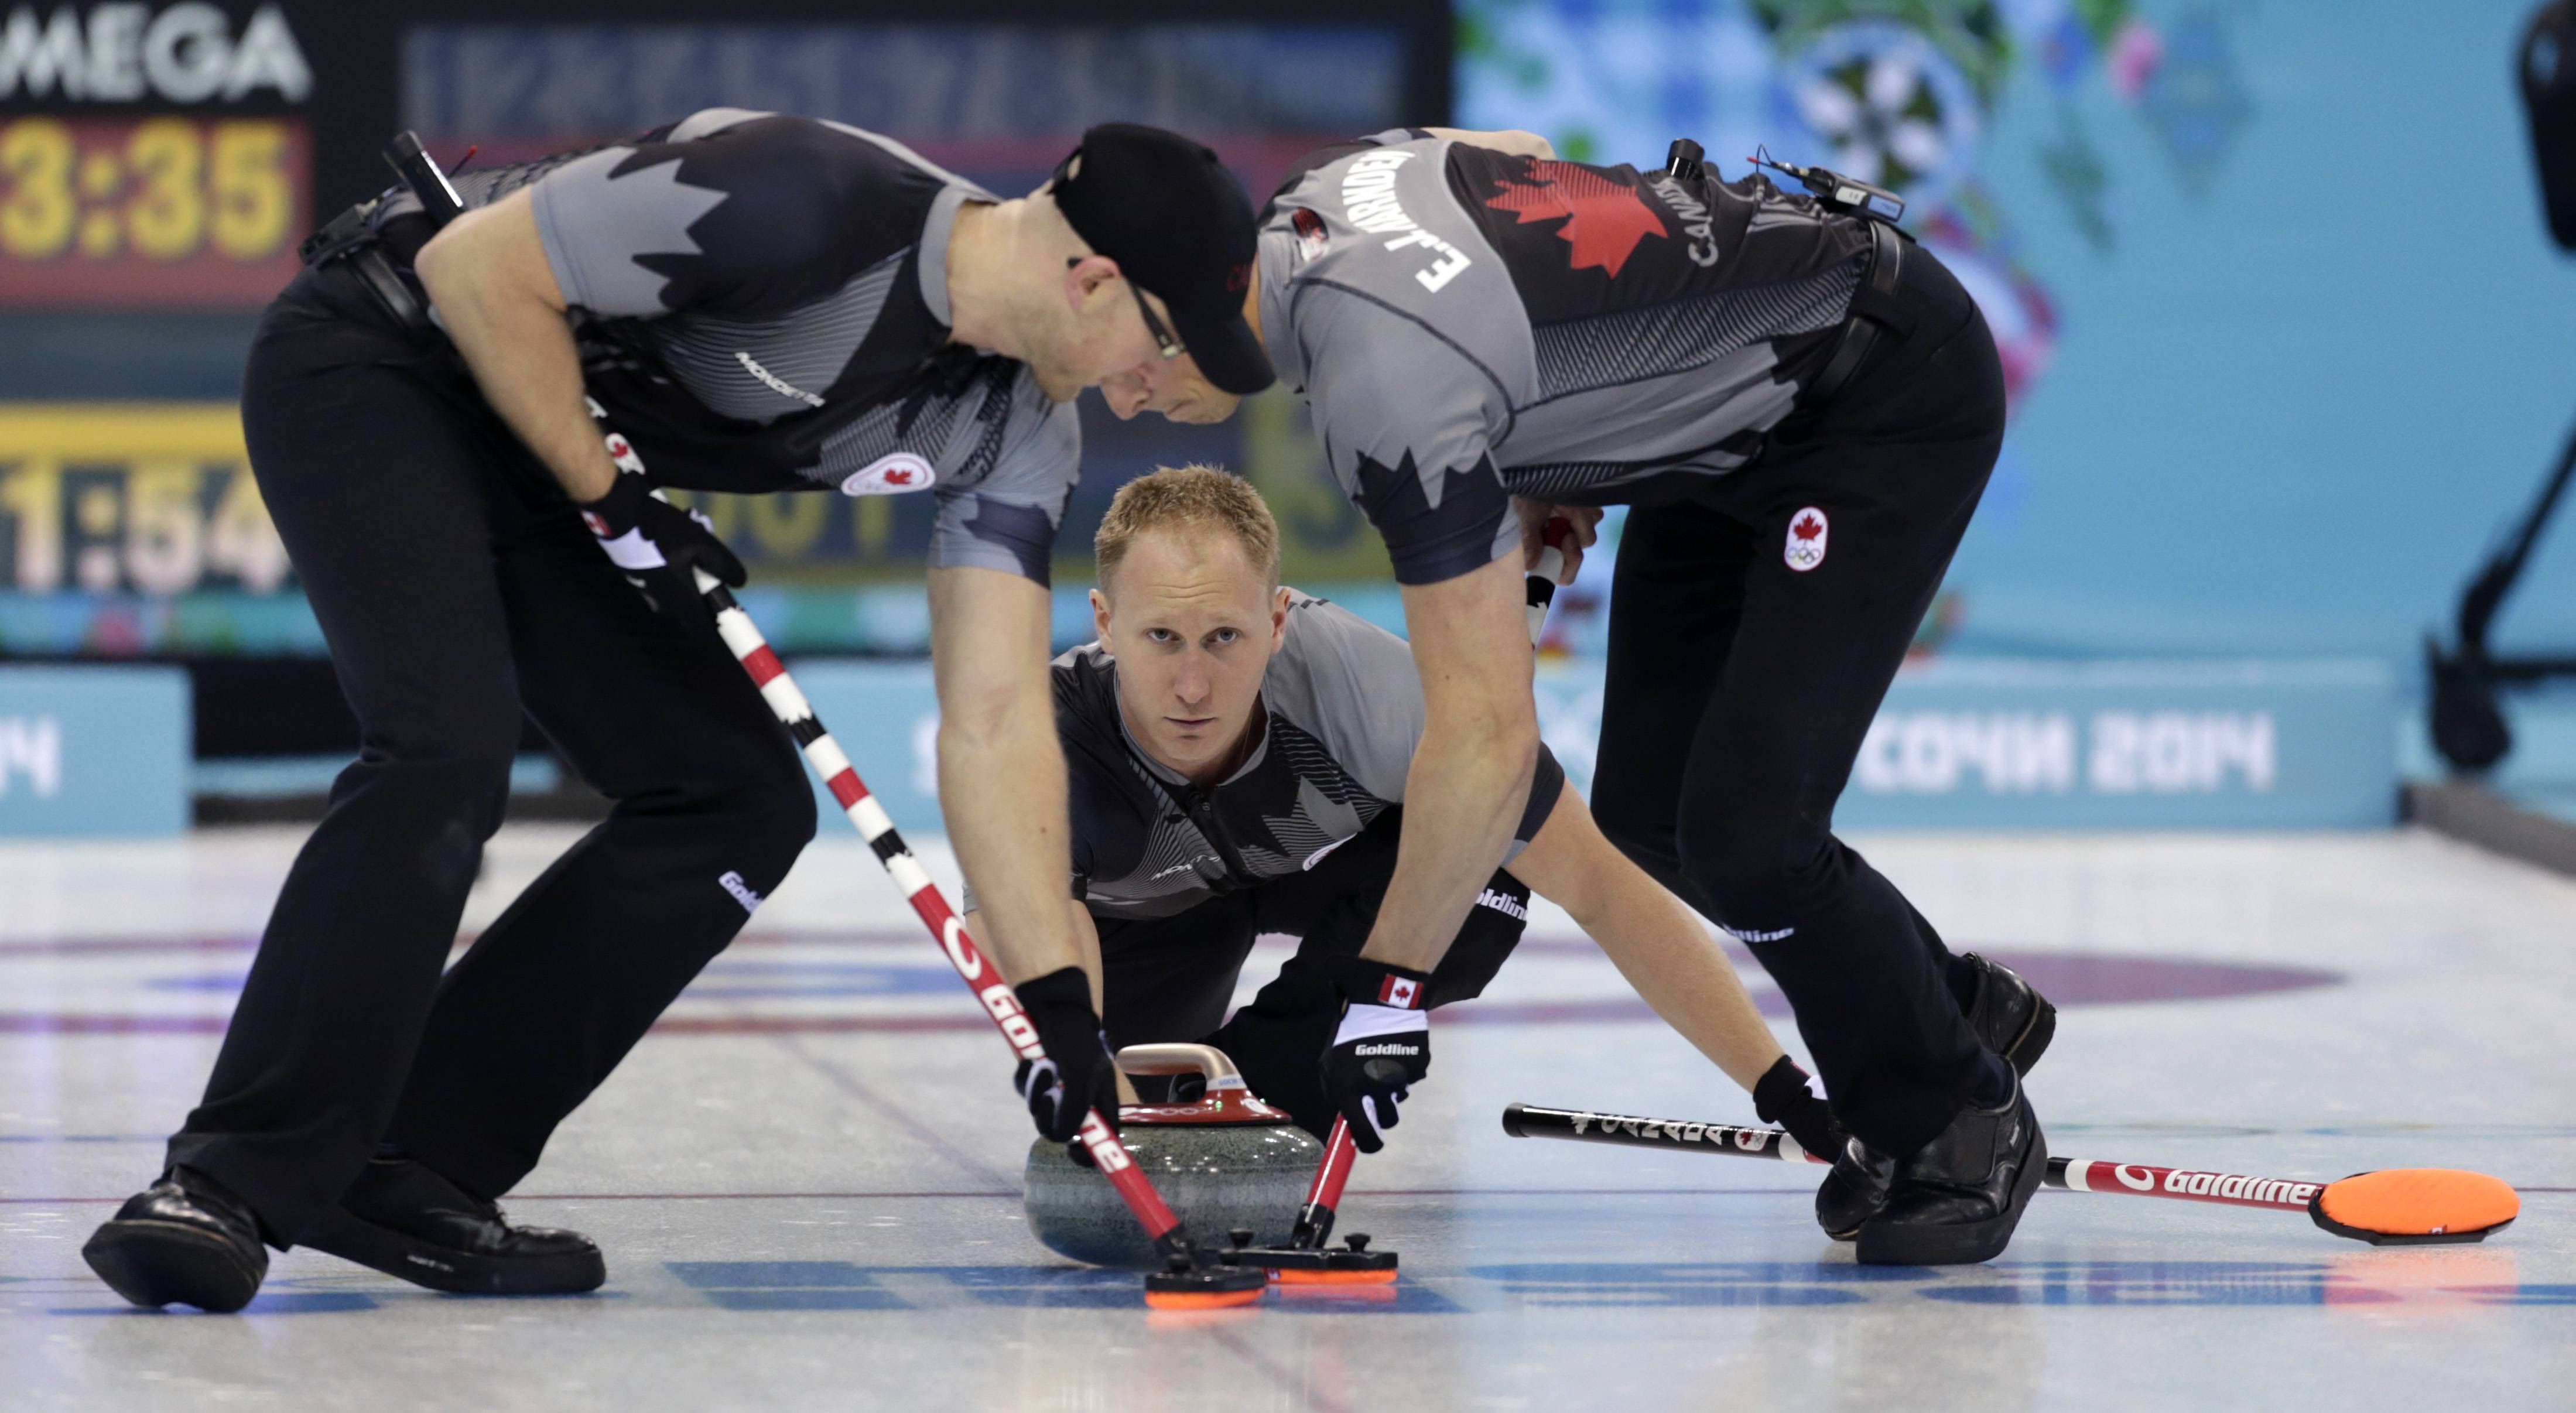 Canada's skip Brad Jacobs, center, delivers the rock to his sweepers Ryan Harnden, left, and E.J. Harnden Friday during men's curling competition against Norway at the 2014 Winter Olympics in Sochi, Russia.